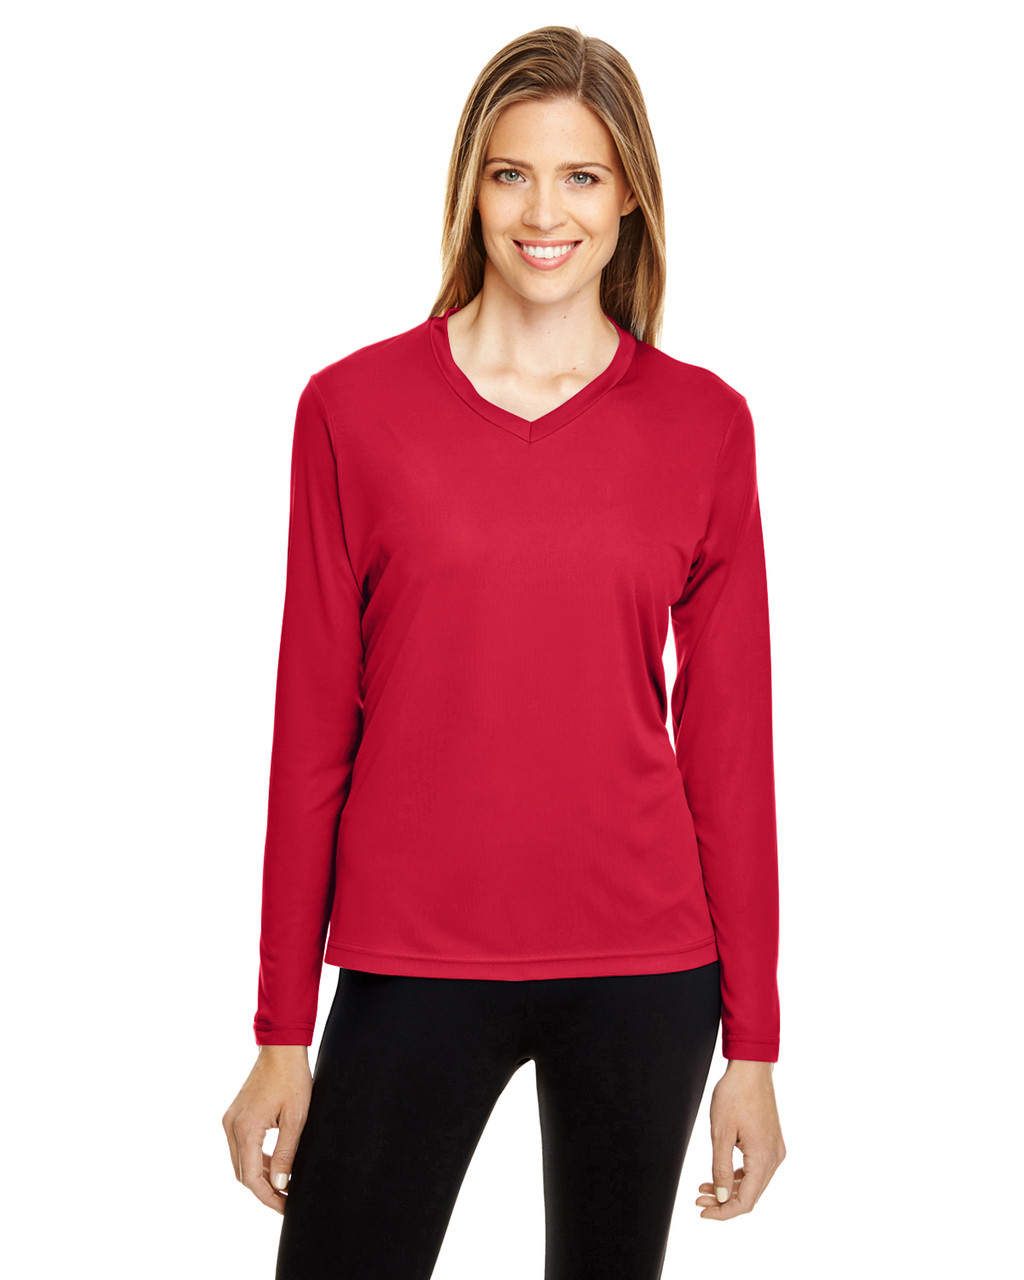 Sport Red - TT11WL Team 365 Ladies' Zone Performance Long-Sleeve T-Shirt